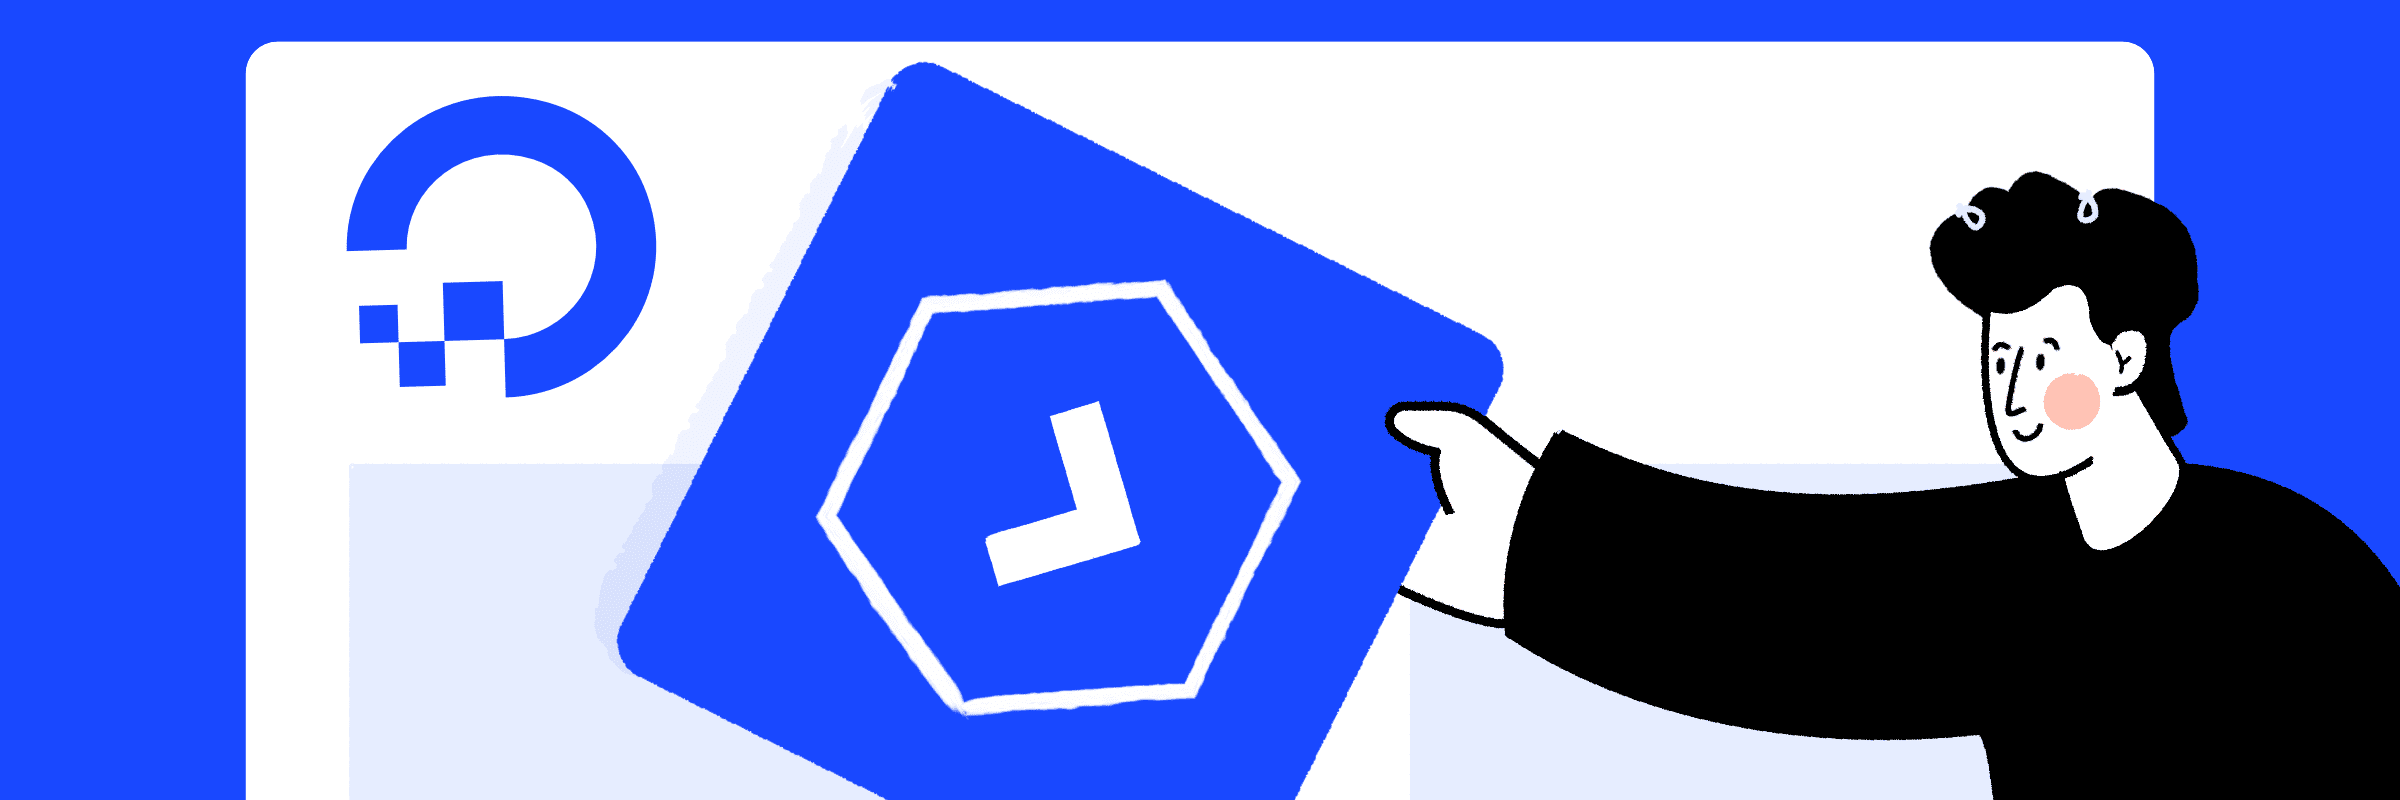 Deploy Buddy on a DigitalOcean droplet in 1 click